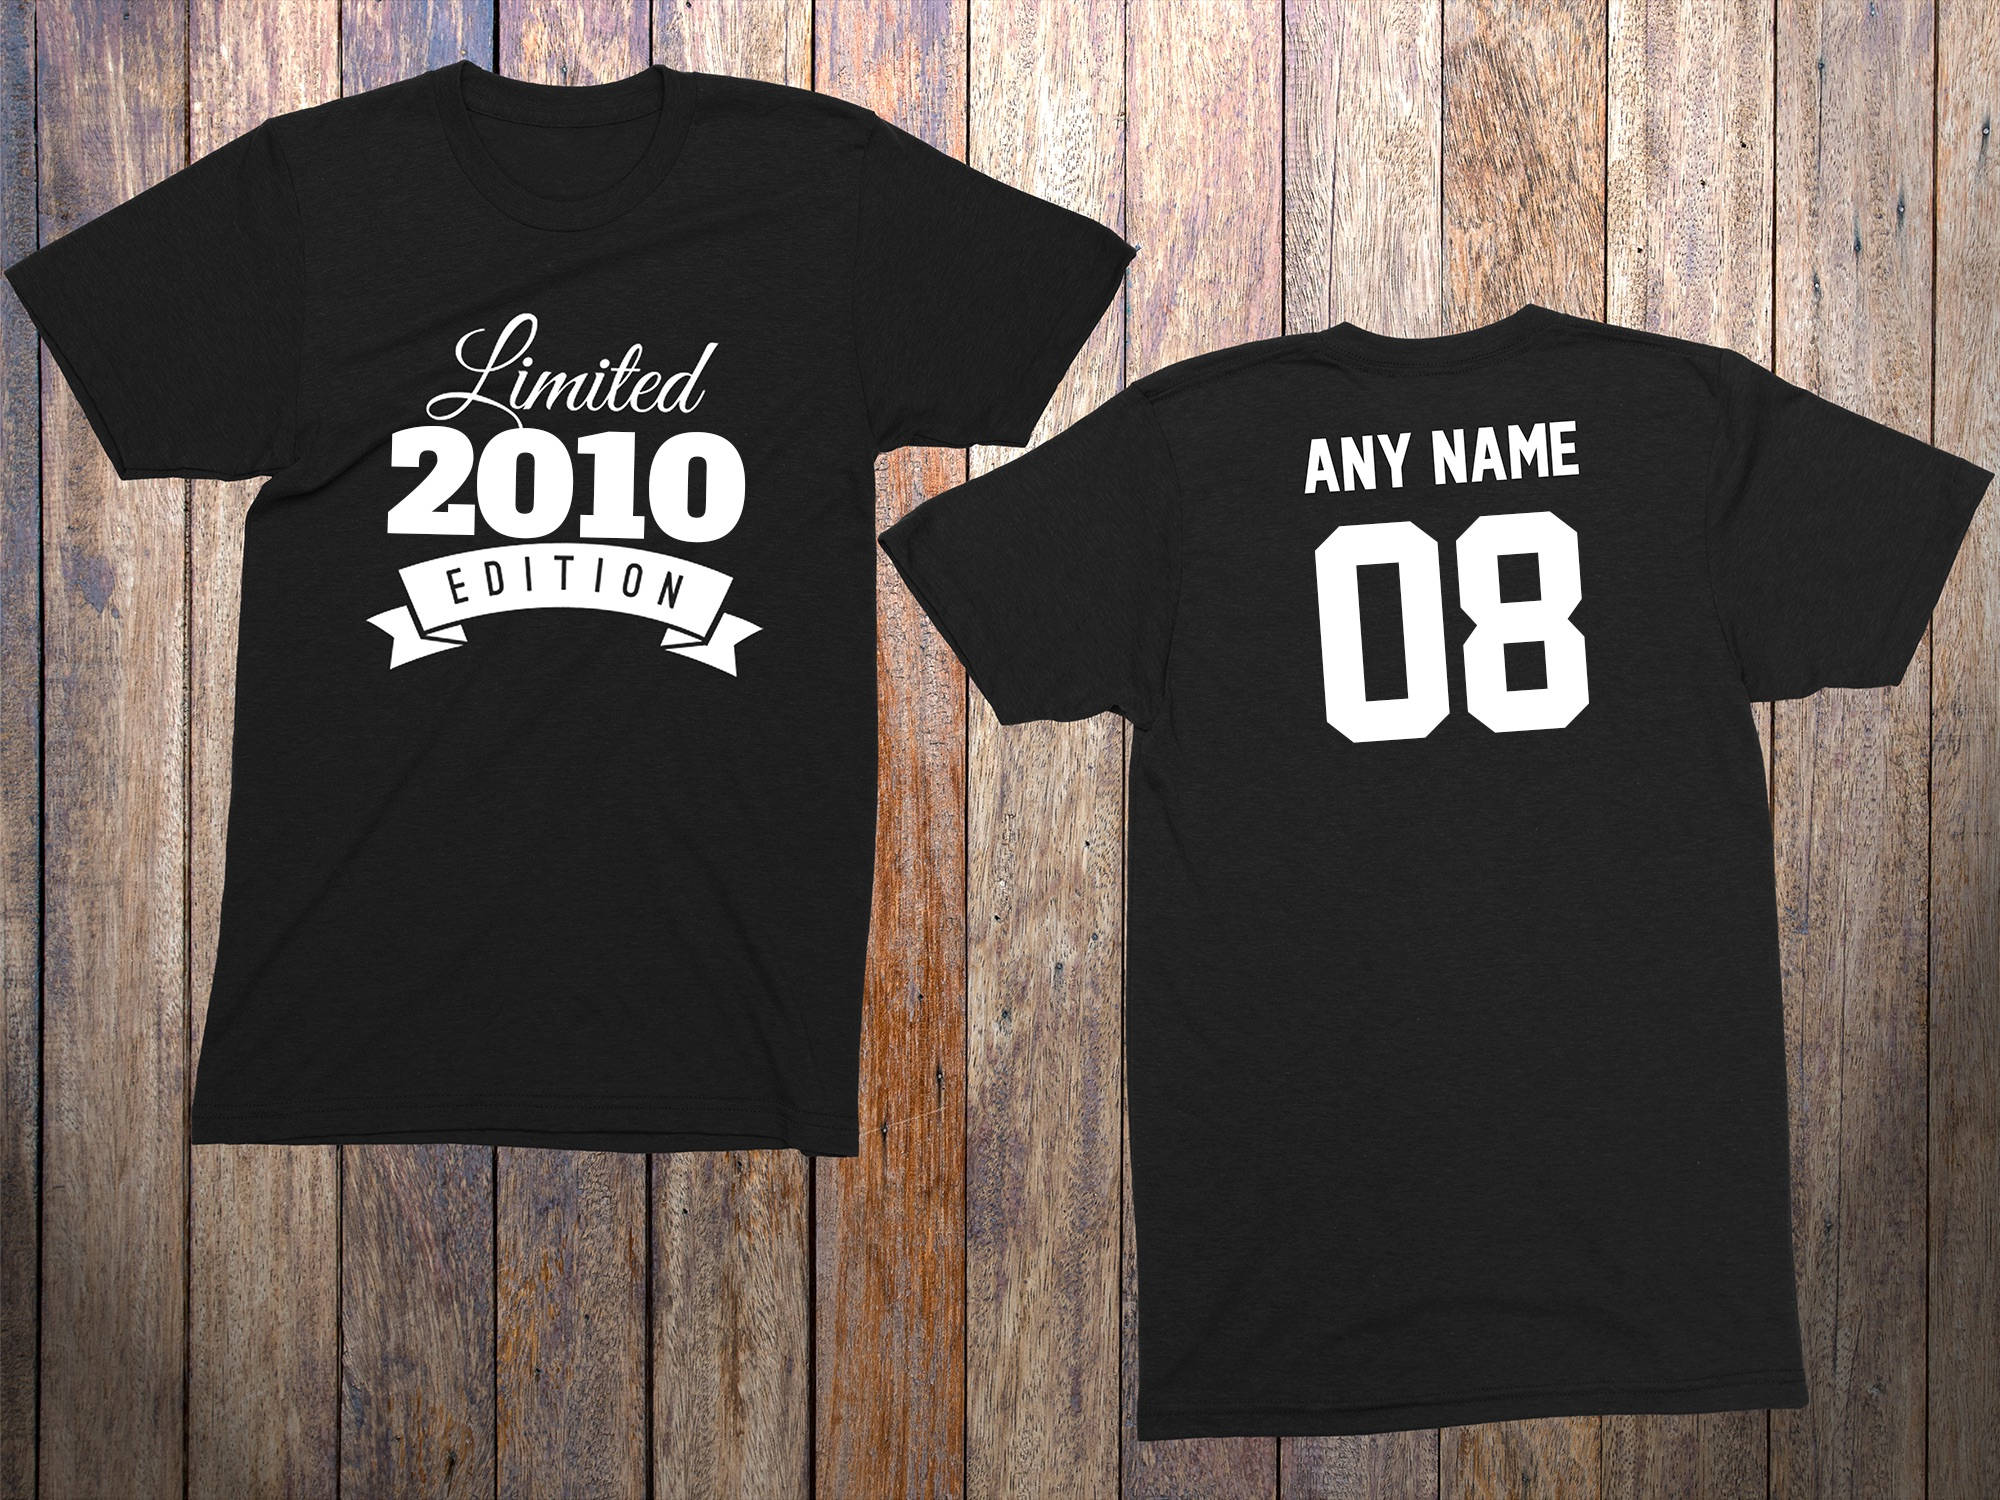 8 Year Old Birthday Shirt Or Hoodie 2010 Kids Limited Edition 8th Party Years Youth Celebration